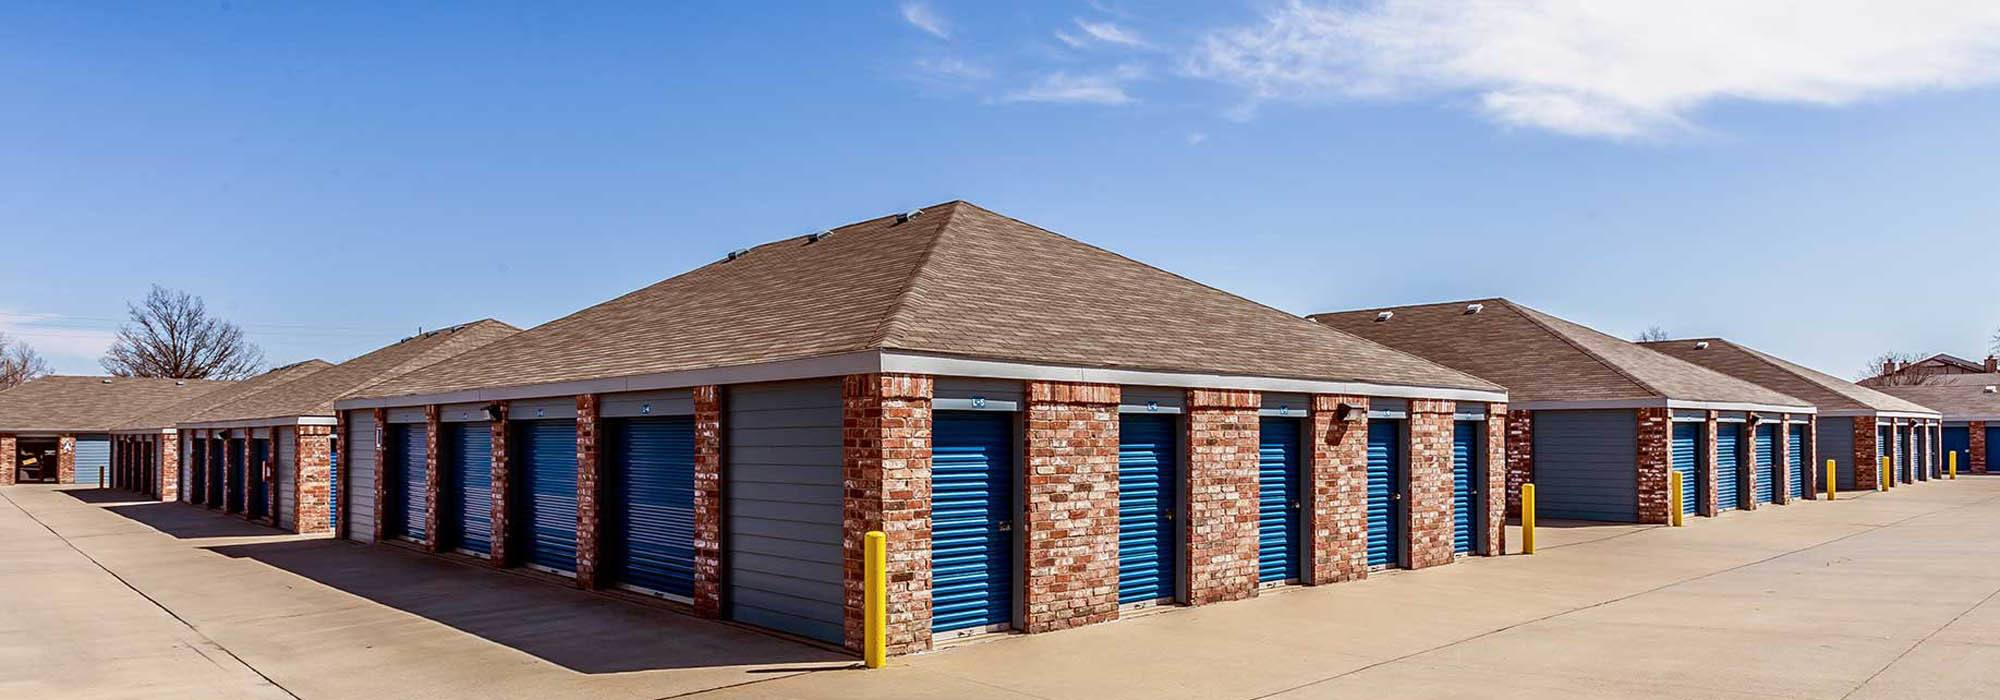 Self storage in Wichita